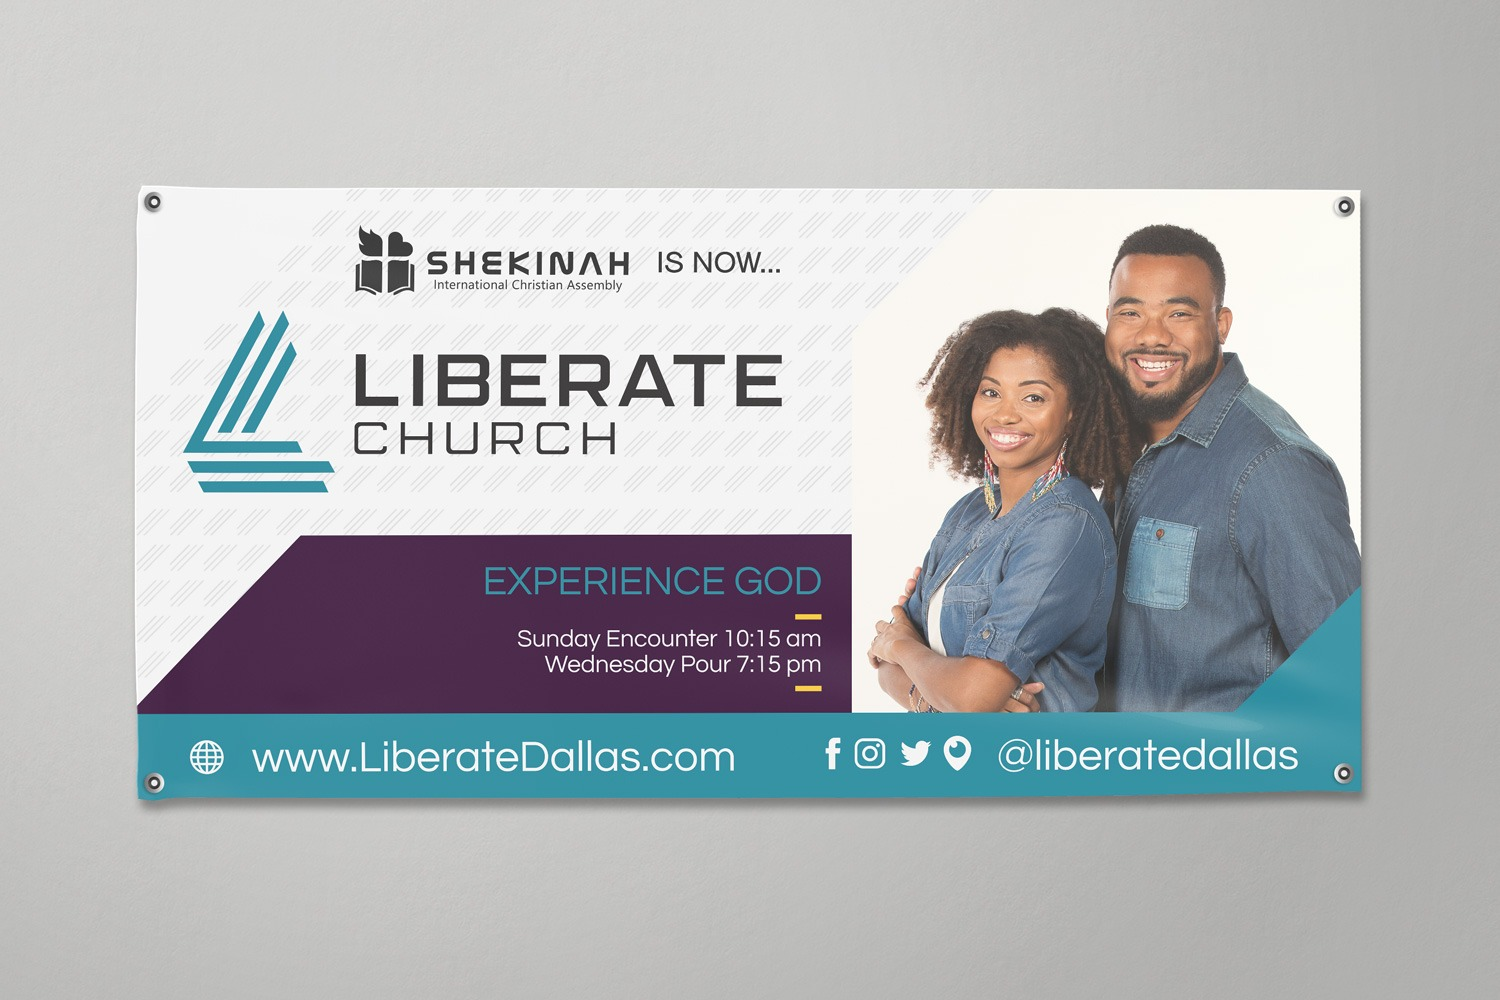 Rebrand banner of church logo and branding ideas